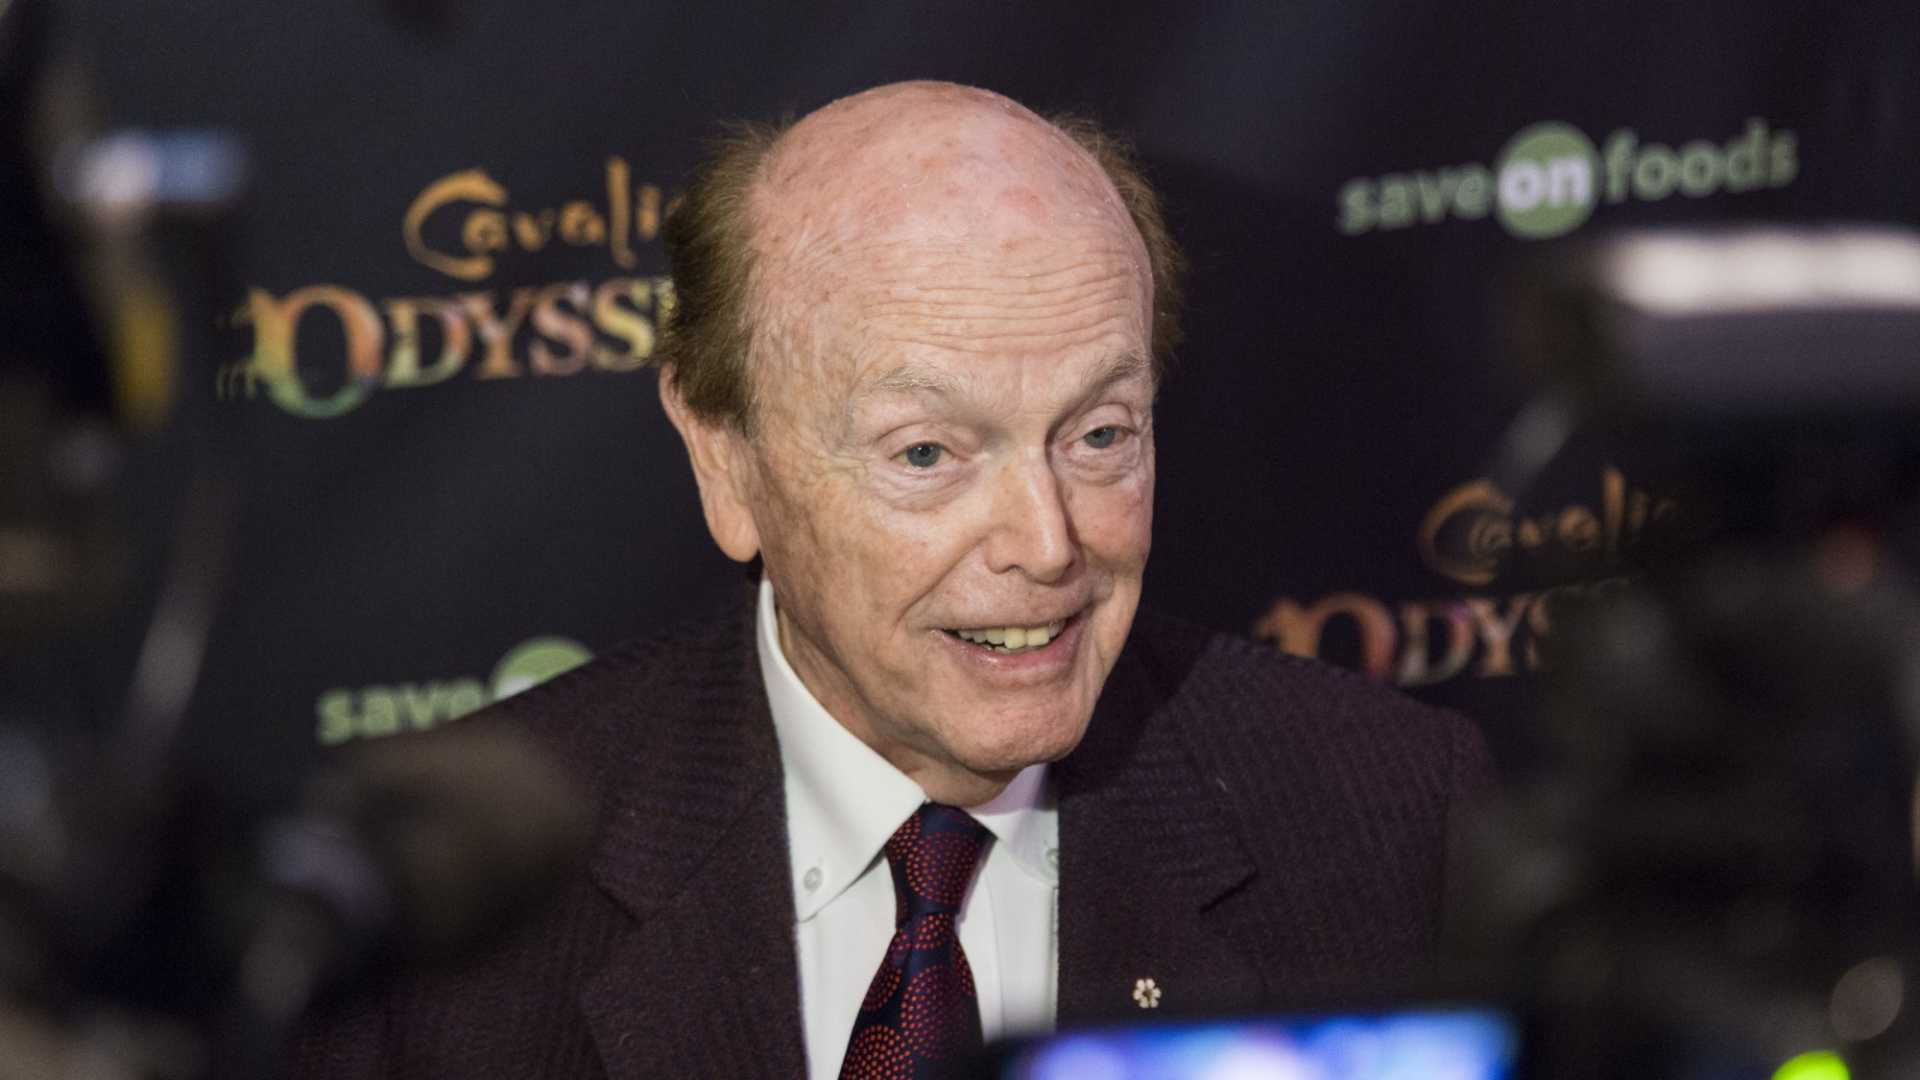 90-Year-Old Billionaire Jimmy Pattison Says These Are the 7 Secrets to His Success